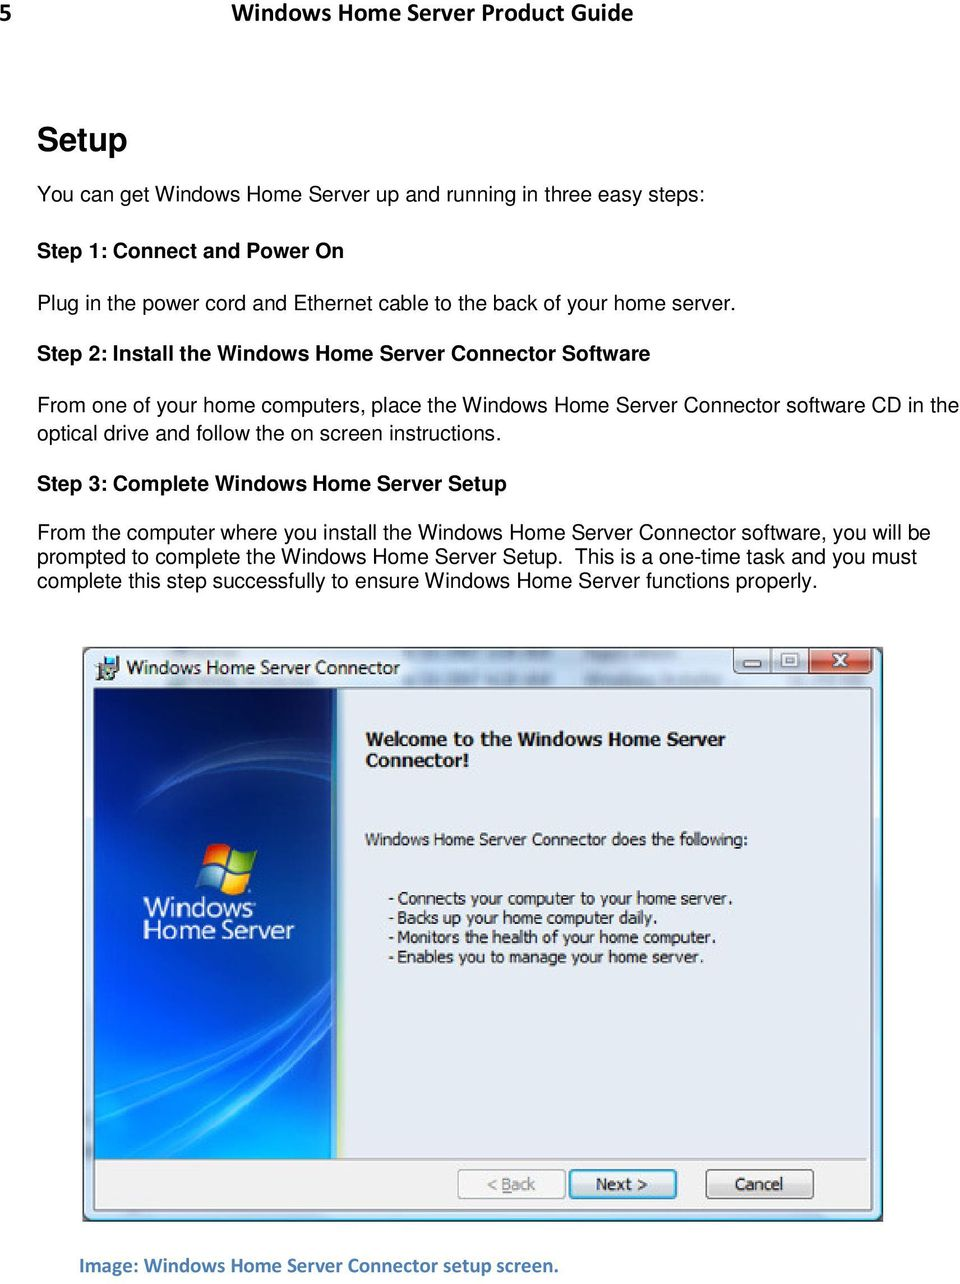 Step 2: Install the Windows Home Server Connector Software From one of your home computers, place the Windows Home Server Connector software CD in the optical drive and follow the on screen